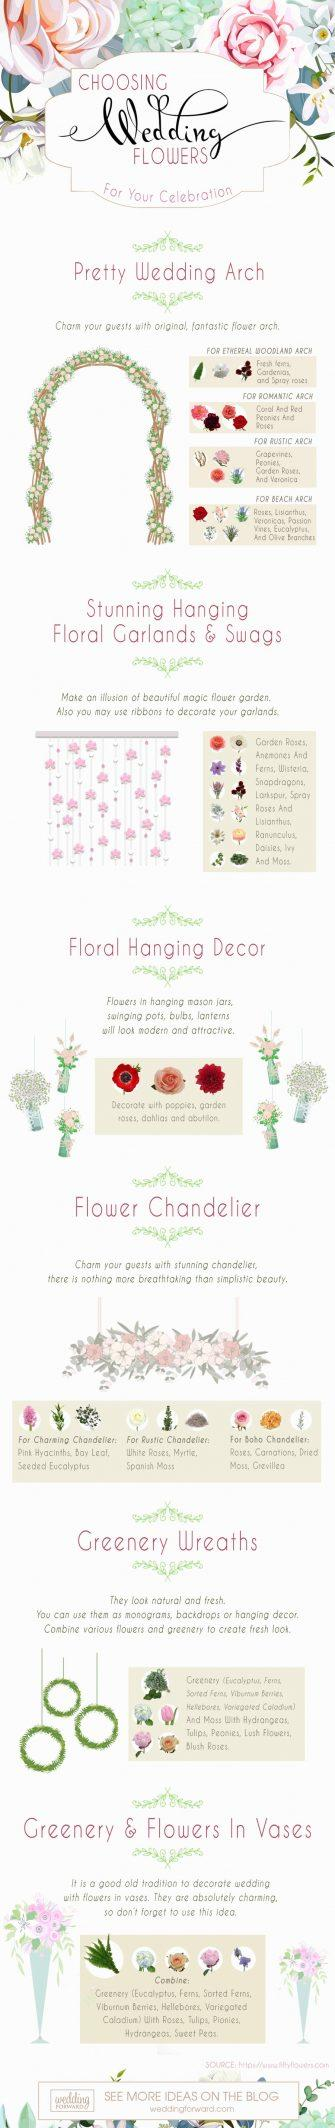 wedding-decor-ideas-choosing-wedding-flowers-for-your-celebration